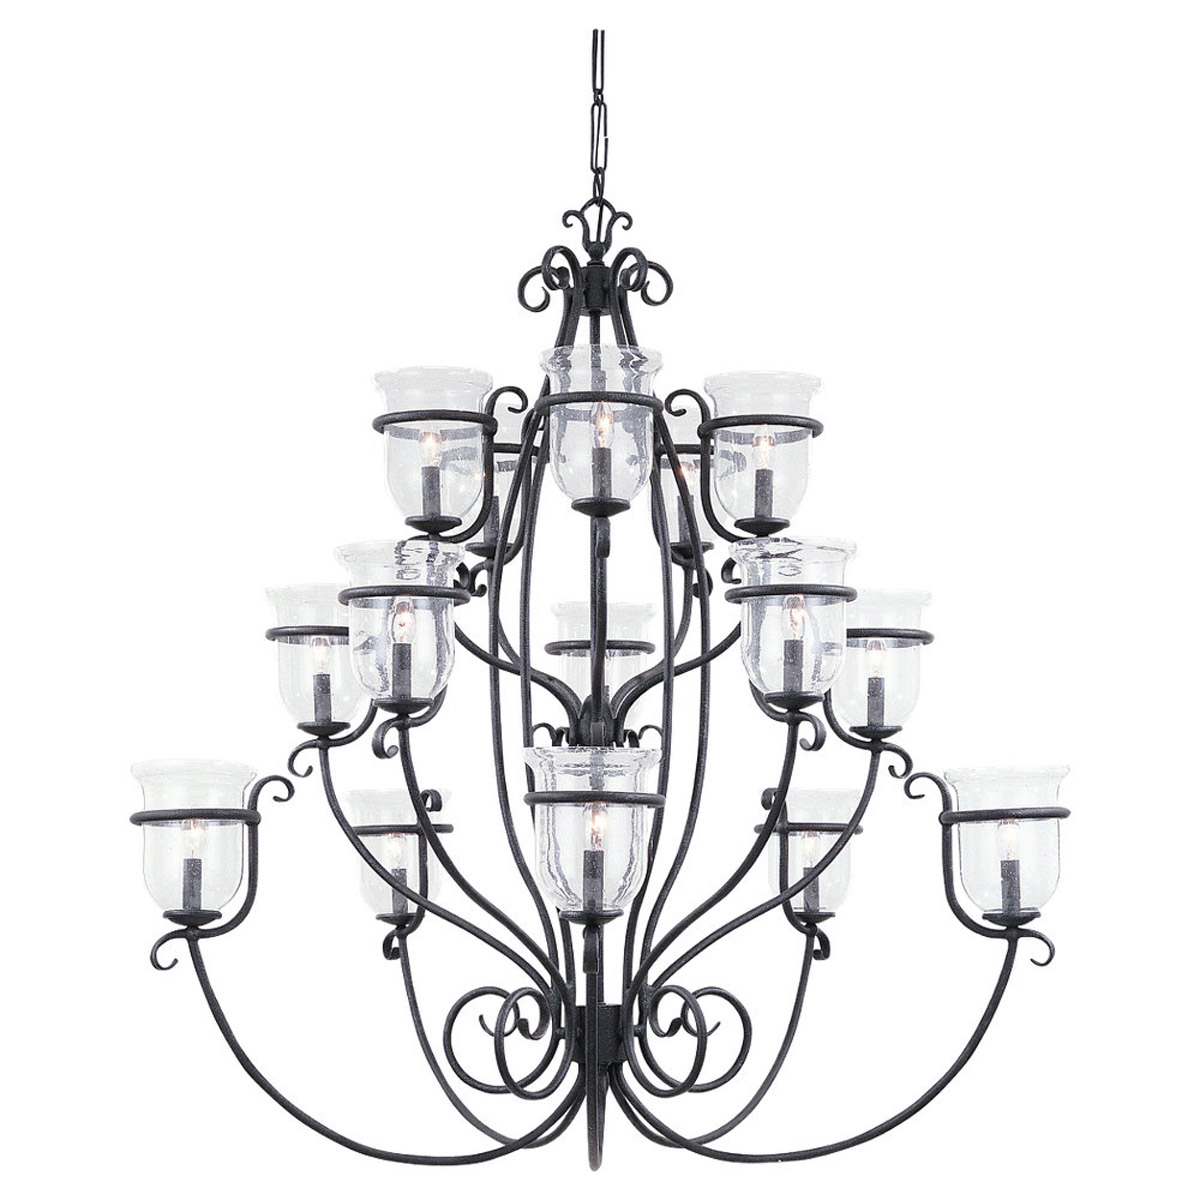 Sea Gull Lighting Manor House 15 Light Chandelier in Weathered Iron 3405-07